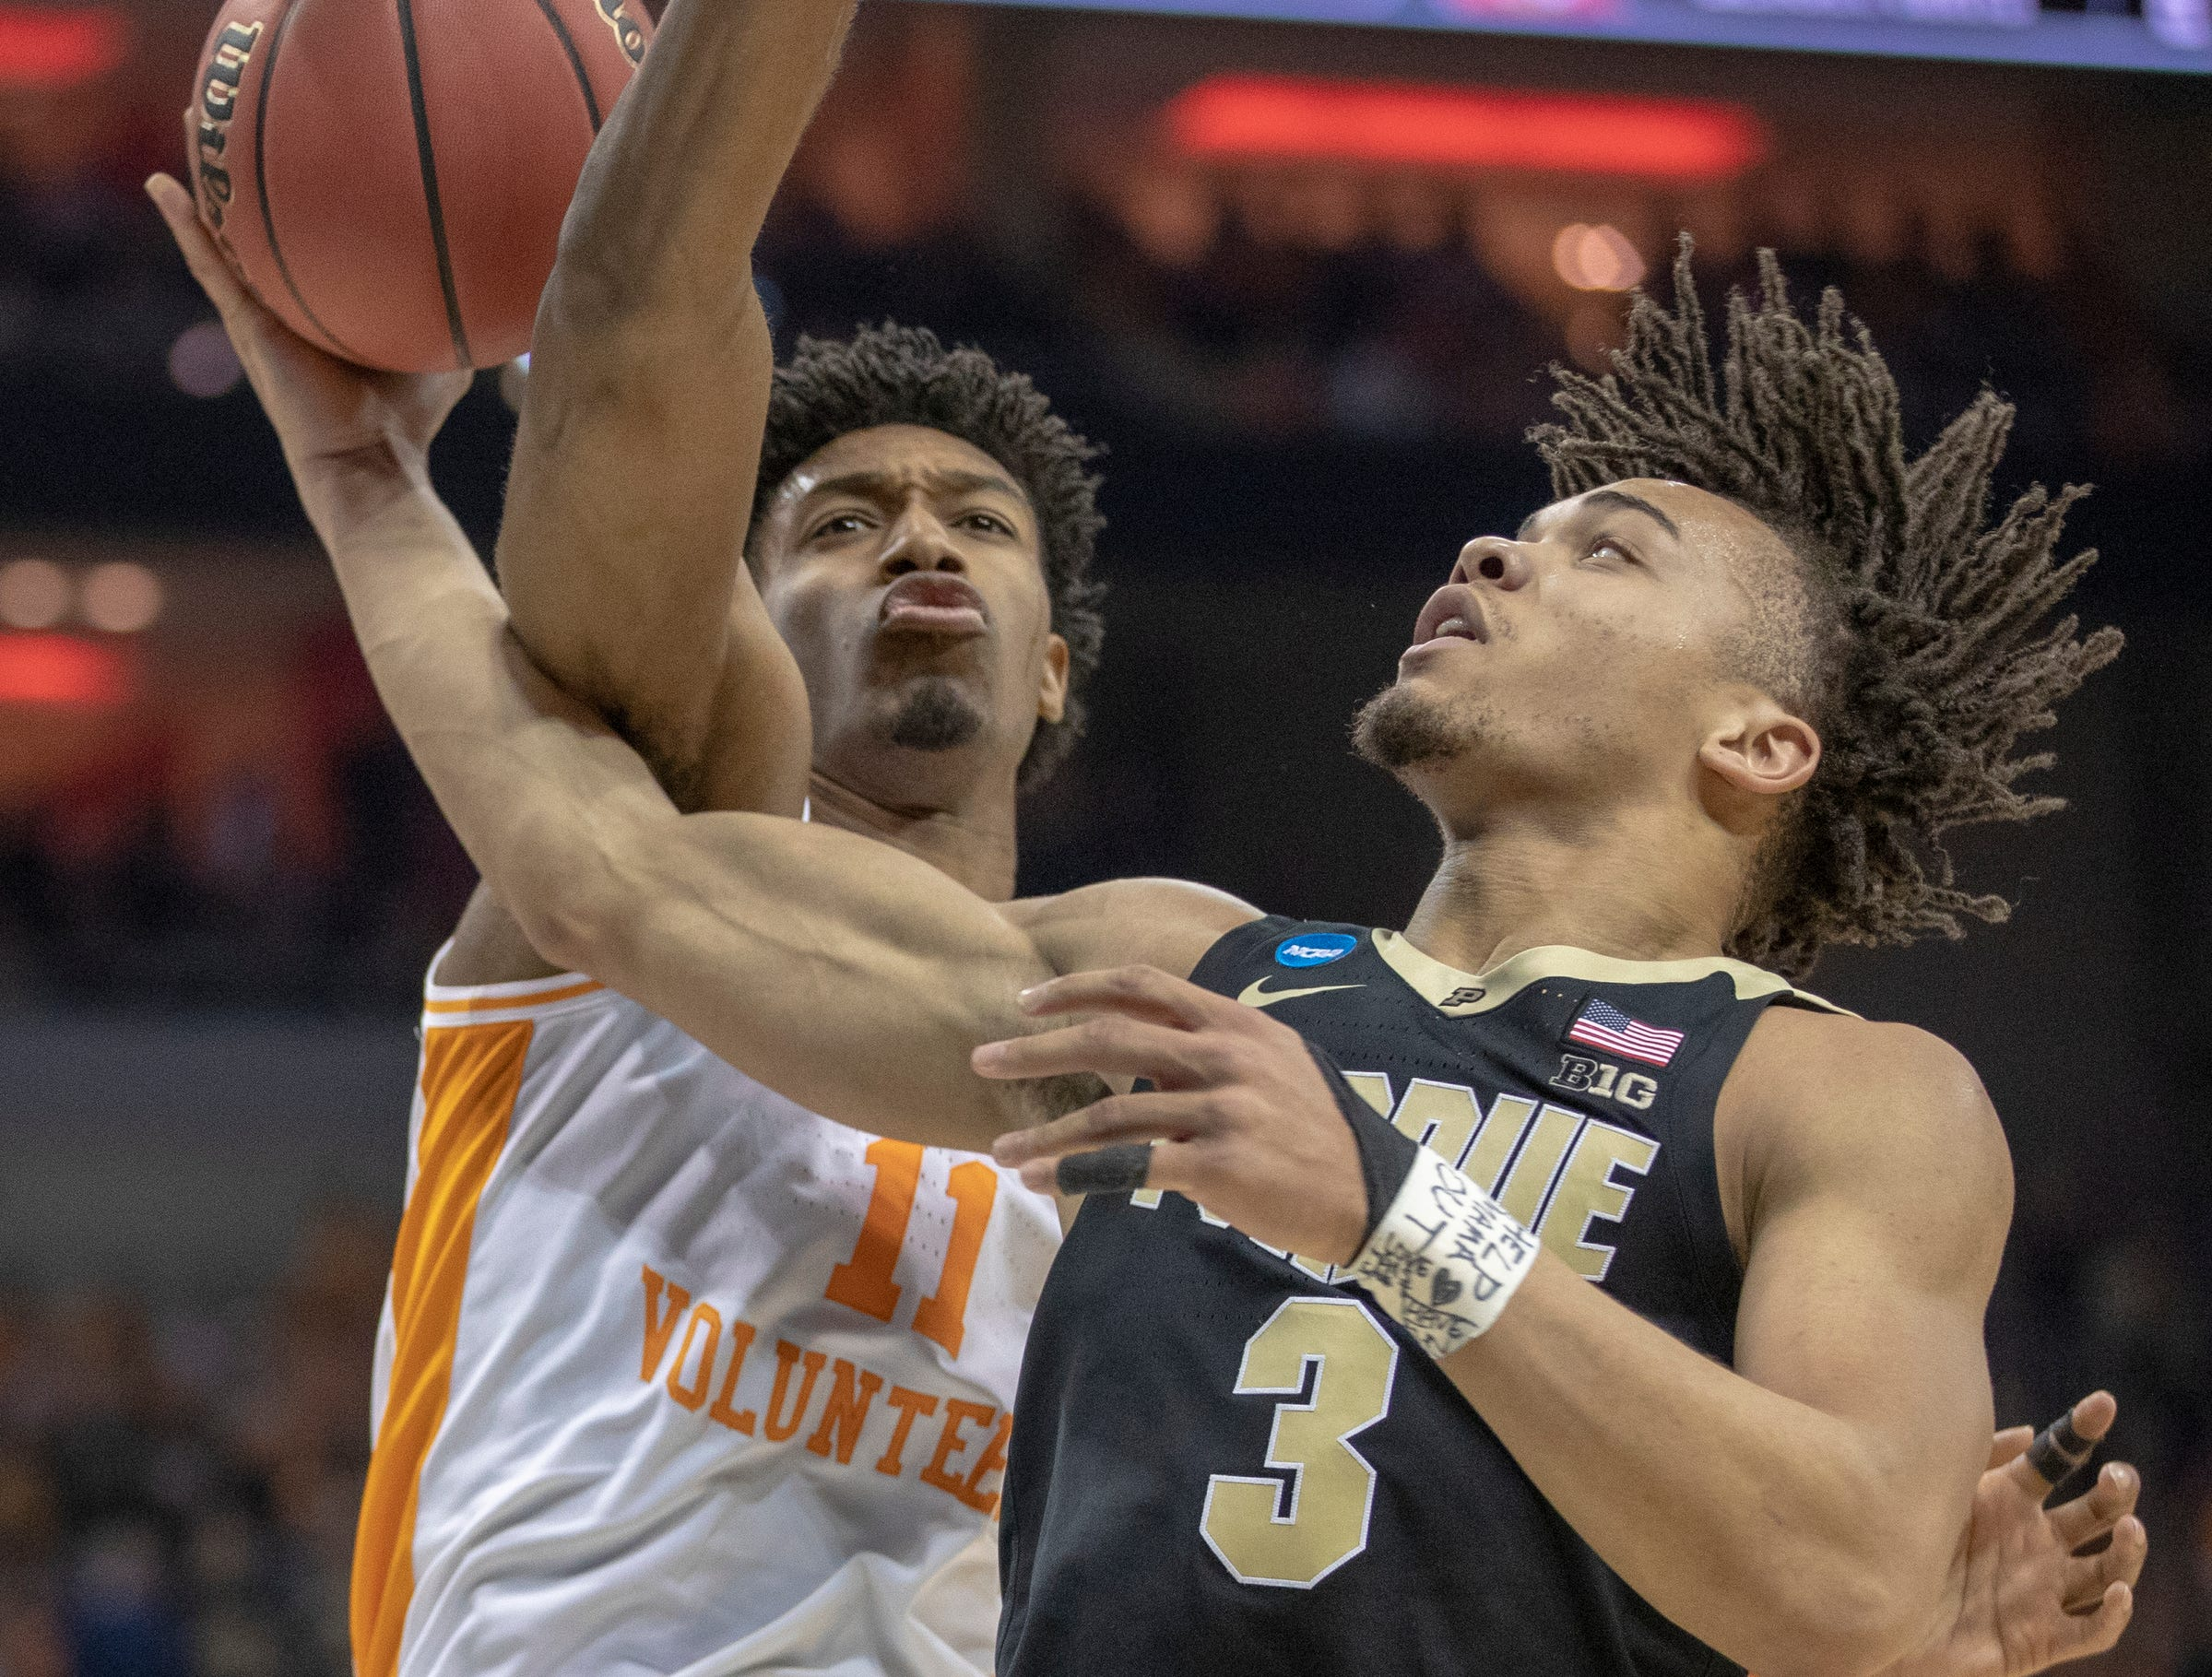 Carsen Edwards of the Purdue Boilermakers tries to loop a shot around defense by Kyle Alexander of the Tennessee Volunteers, NCAA Division 1 Men's Basketball 'Sweet Sixteen' game, KFC Yum Center, Louisville, Thursday, March 28, 2019. Purdue beat Tennessee 99-94.